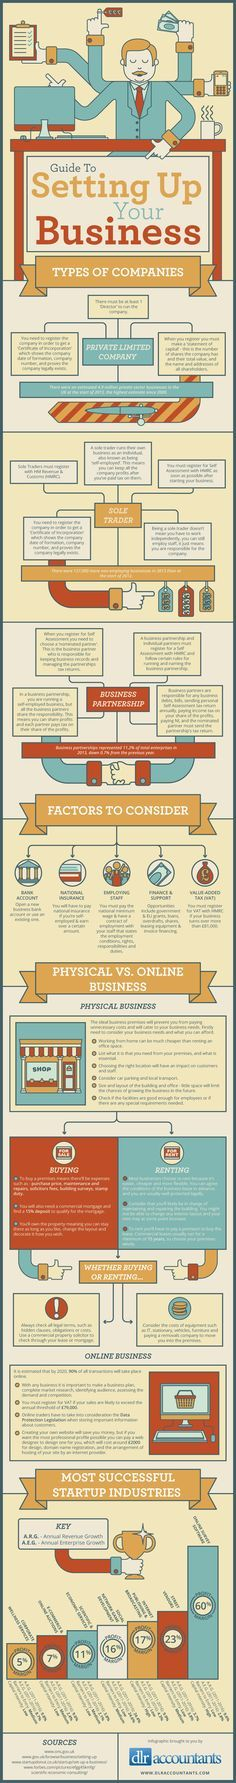 Guide To Setting Up Your Business: Offline (Physical) or Online (Startup)